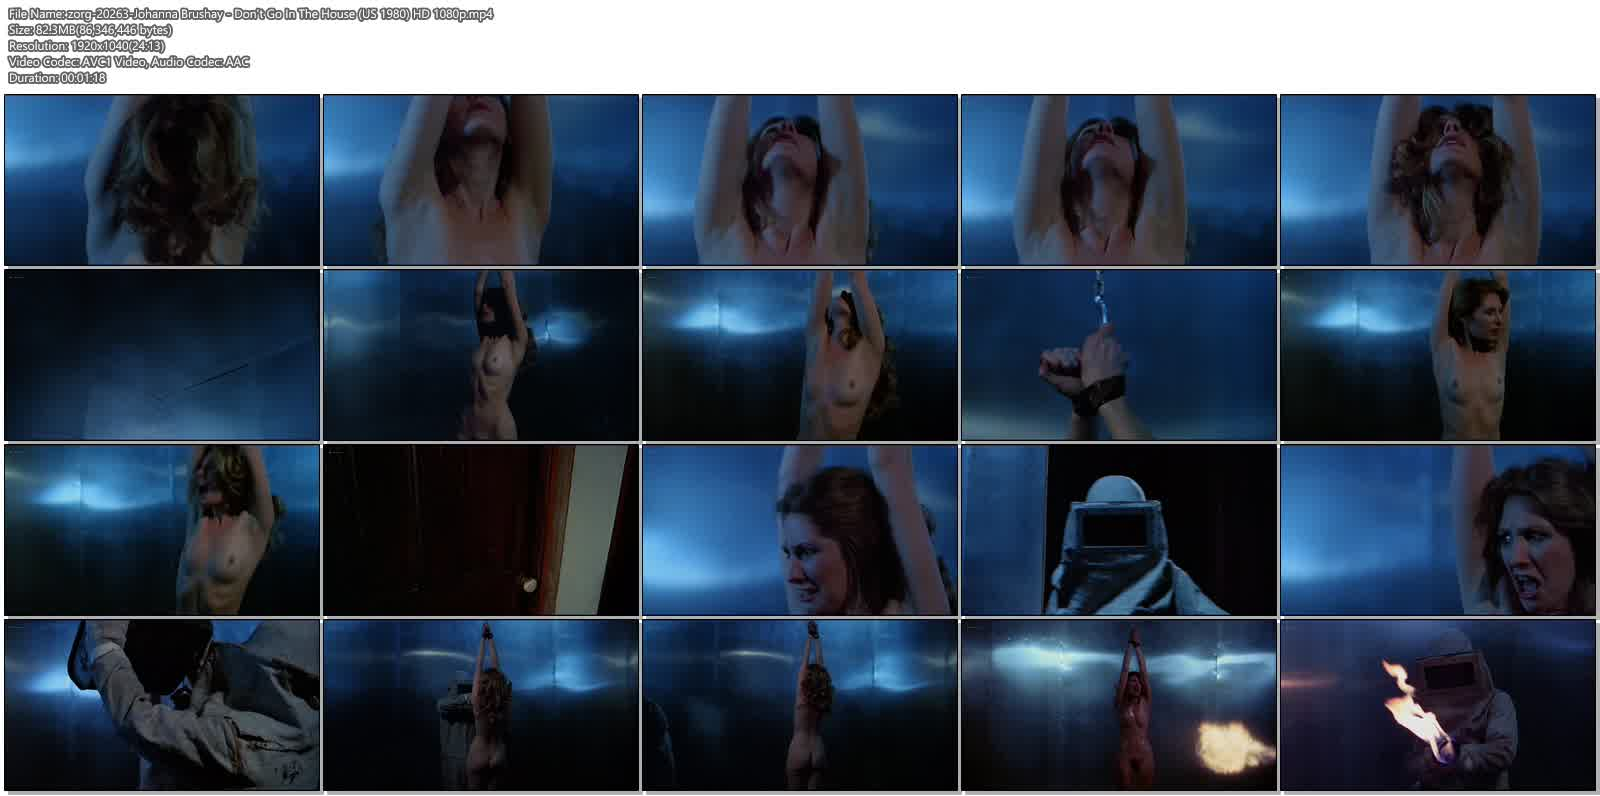 Johanna Brushay nude full frontal - Don't Go In The House (US 1980) HD 1080p (6)